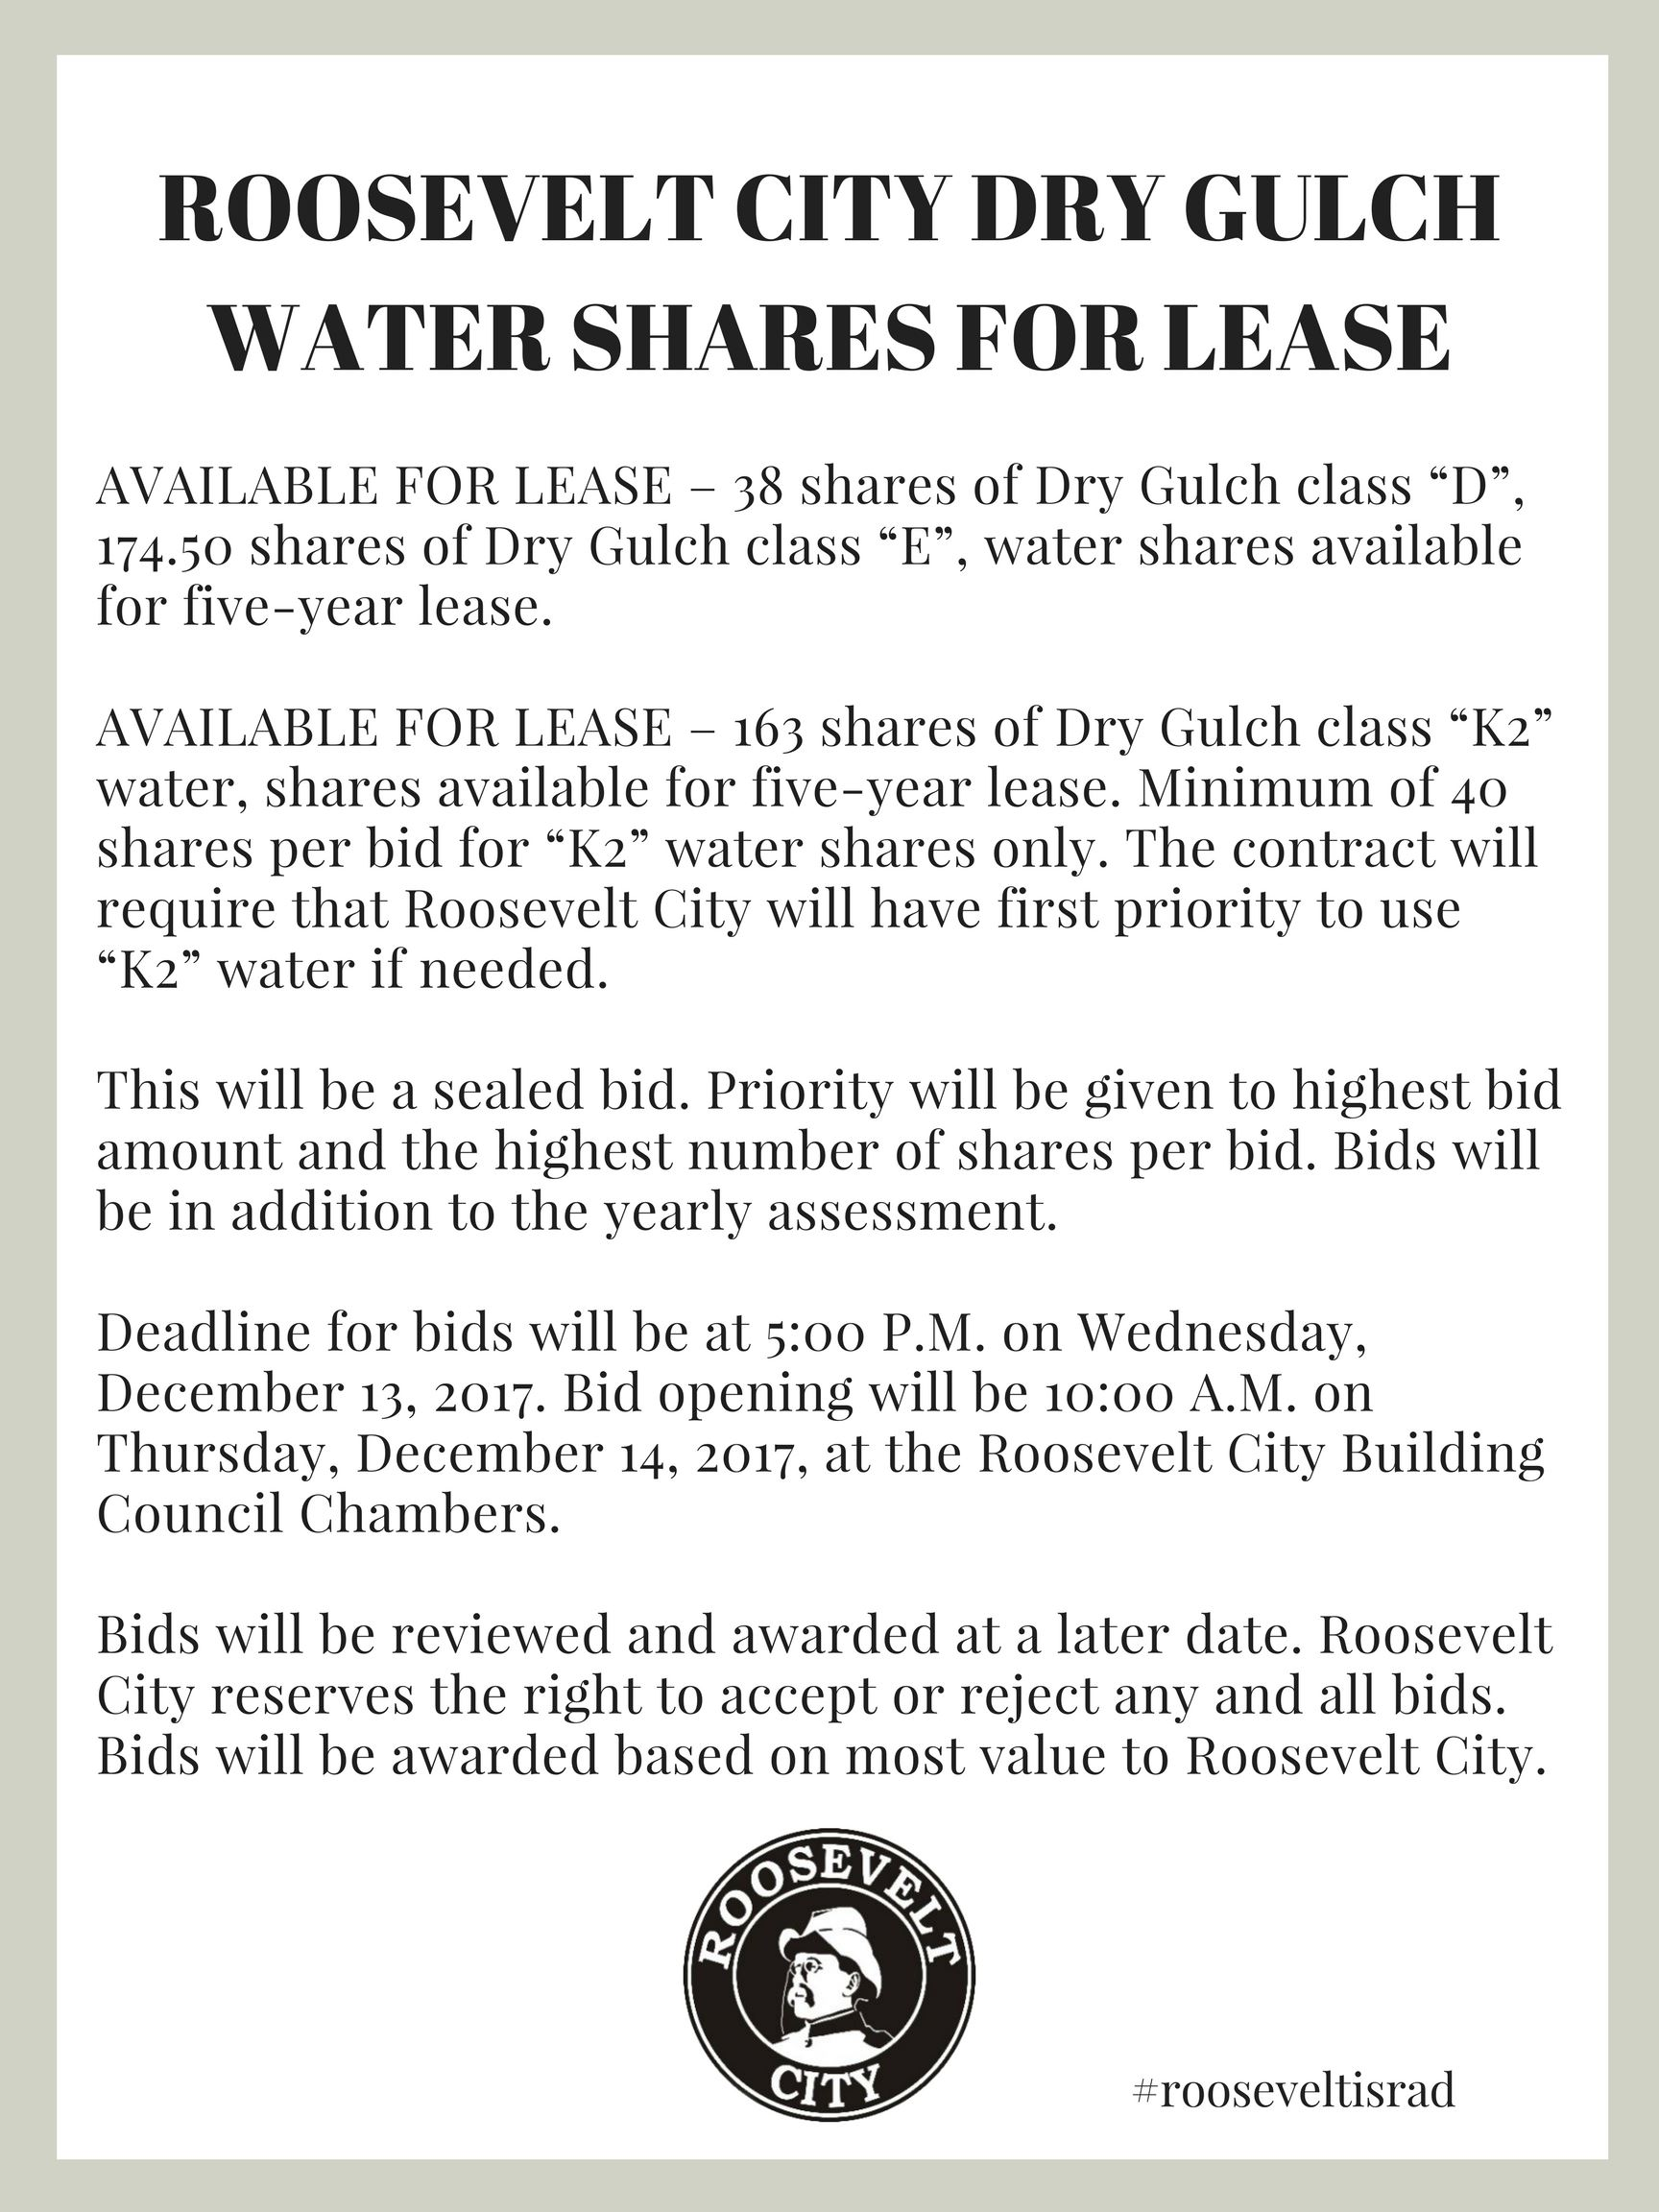 ROOSEVELT CITY DRY GULCH WATER SHARES FOR LEASE